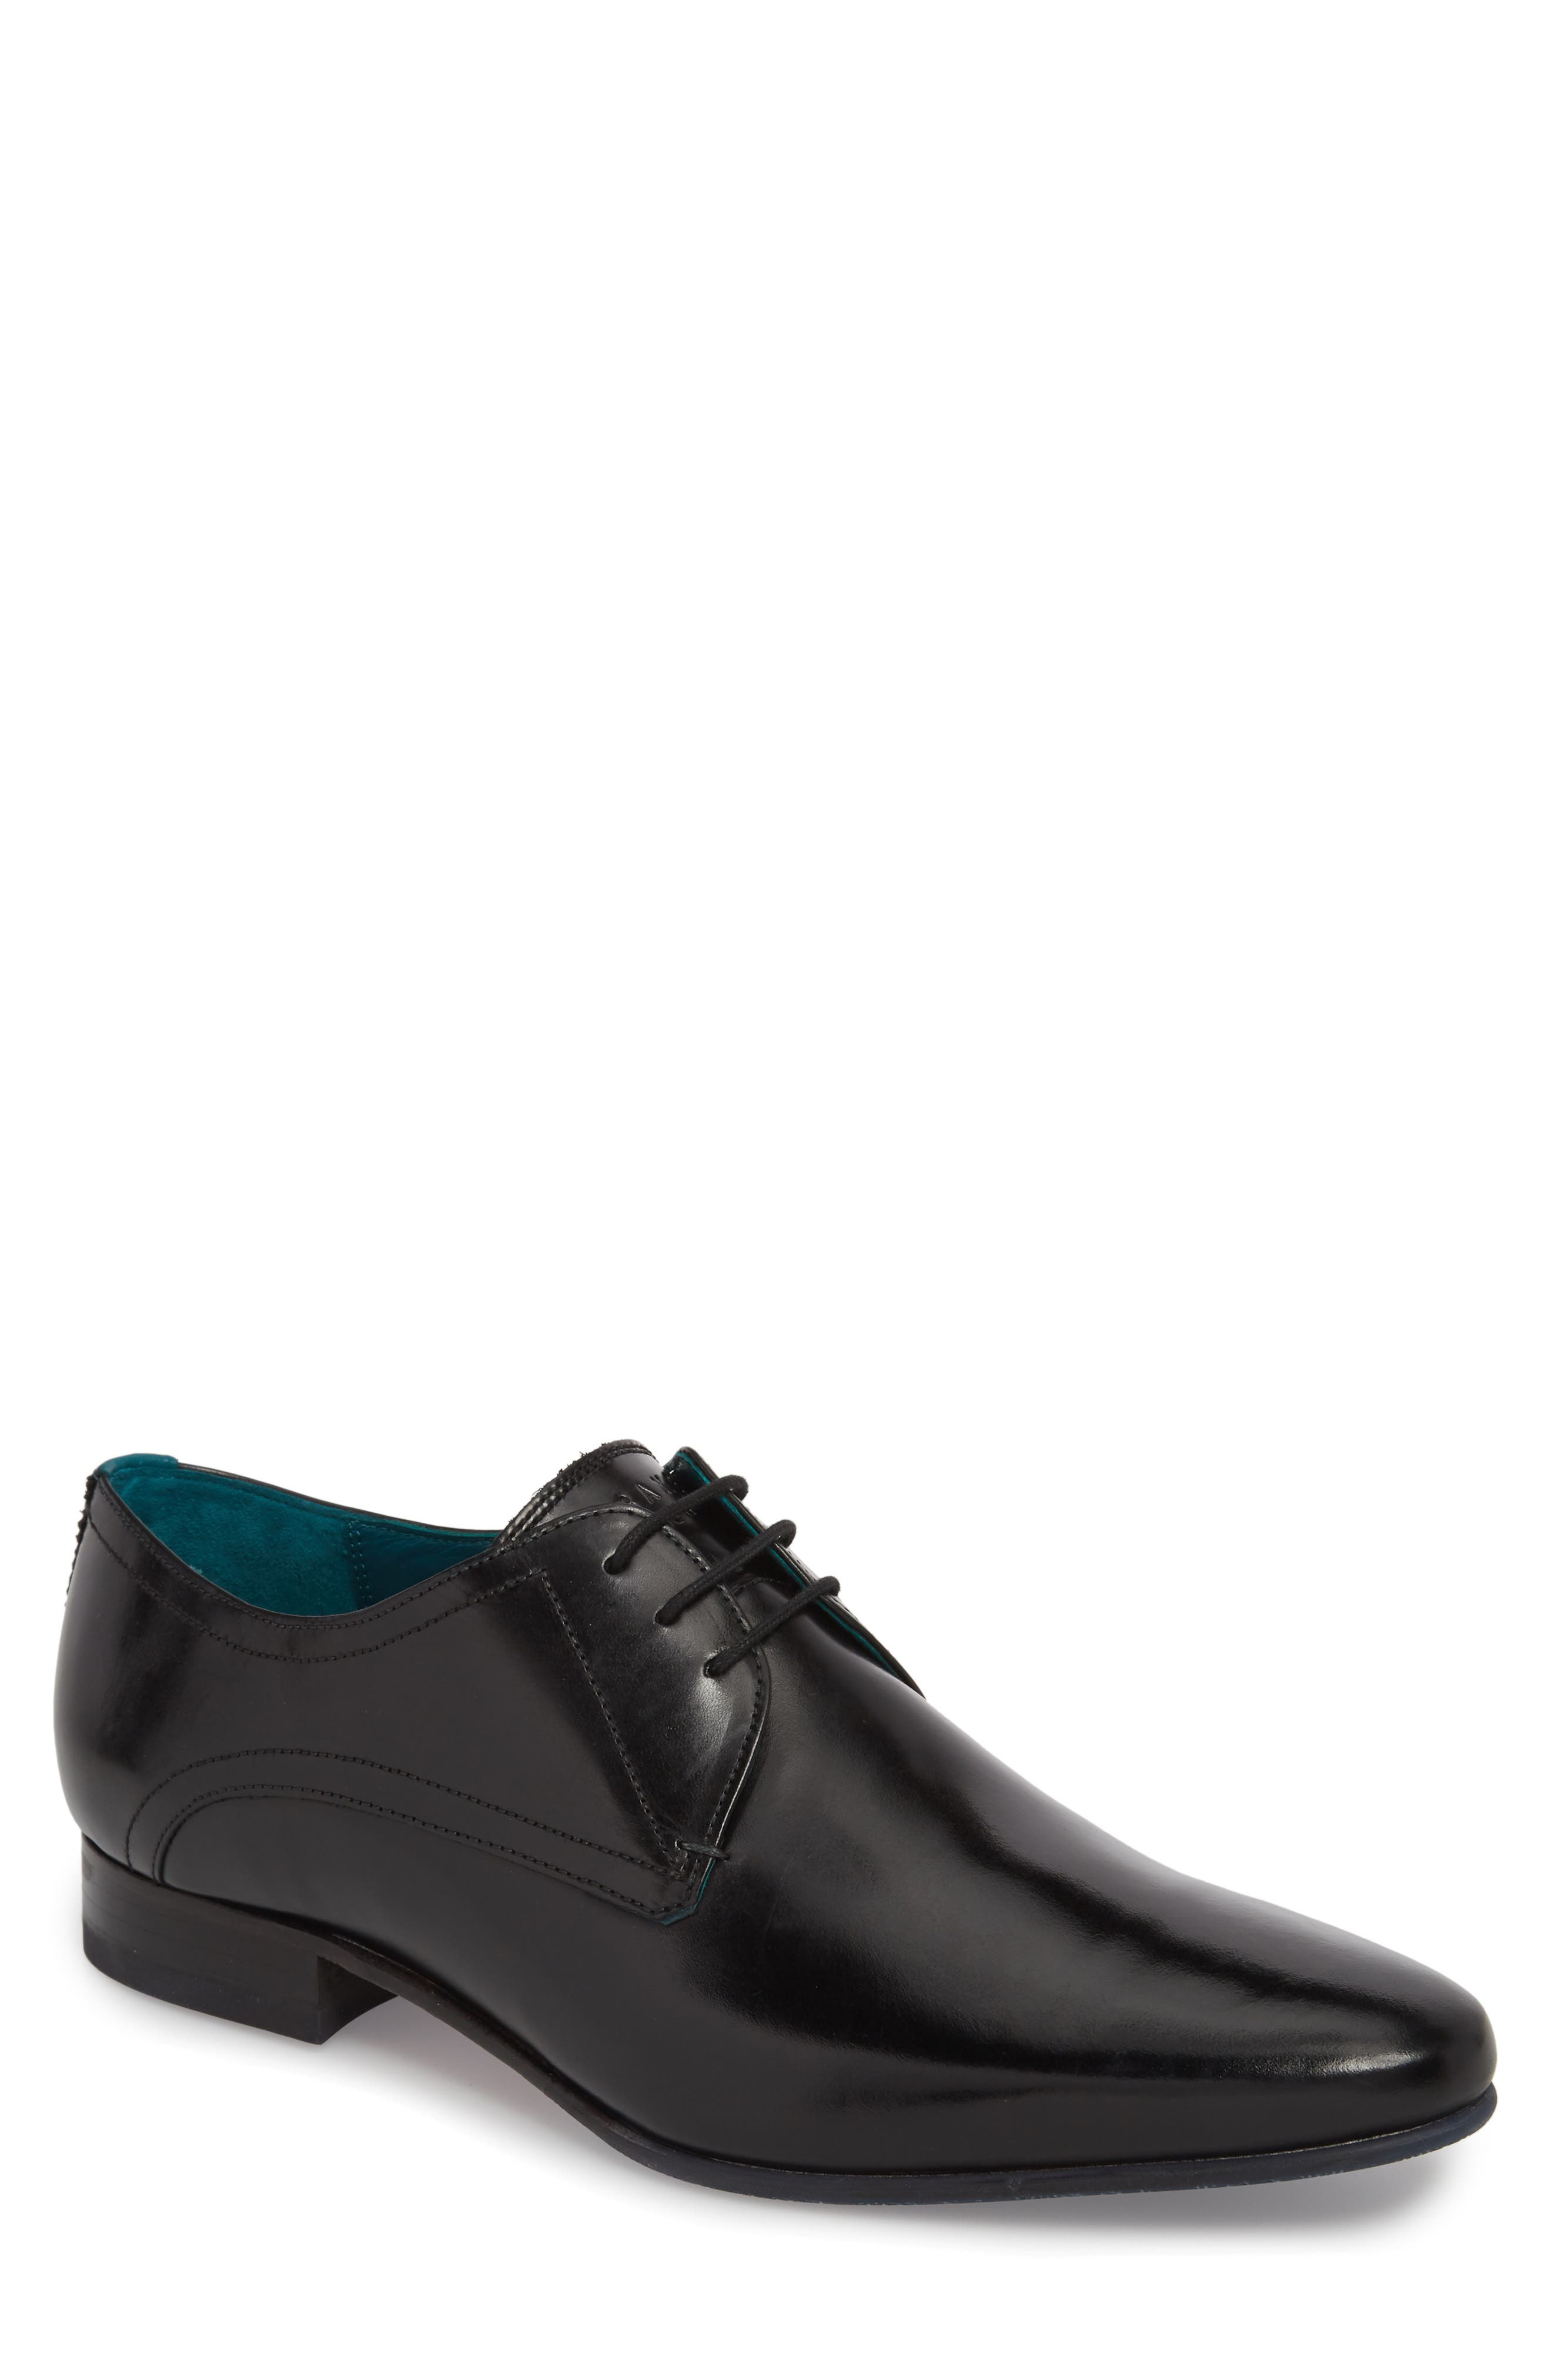 Bhartli Plain Toe Derby,                         Main,                         color, BLACK LEATHER